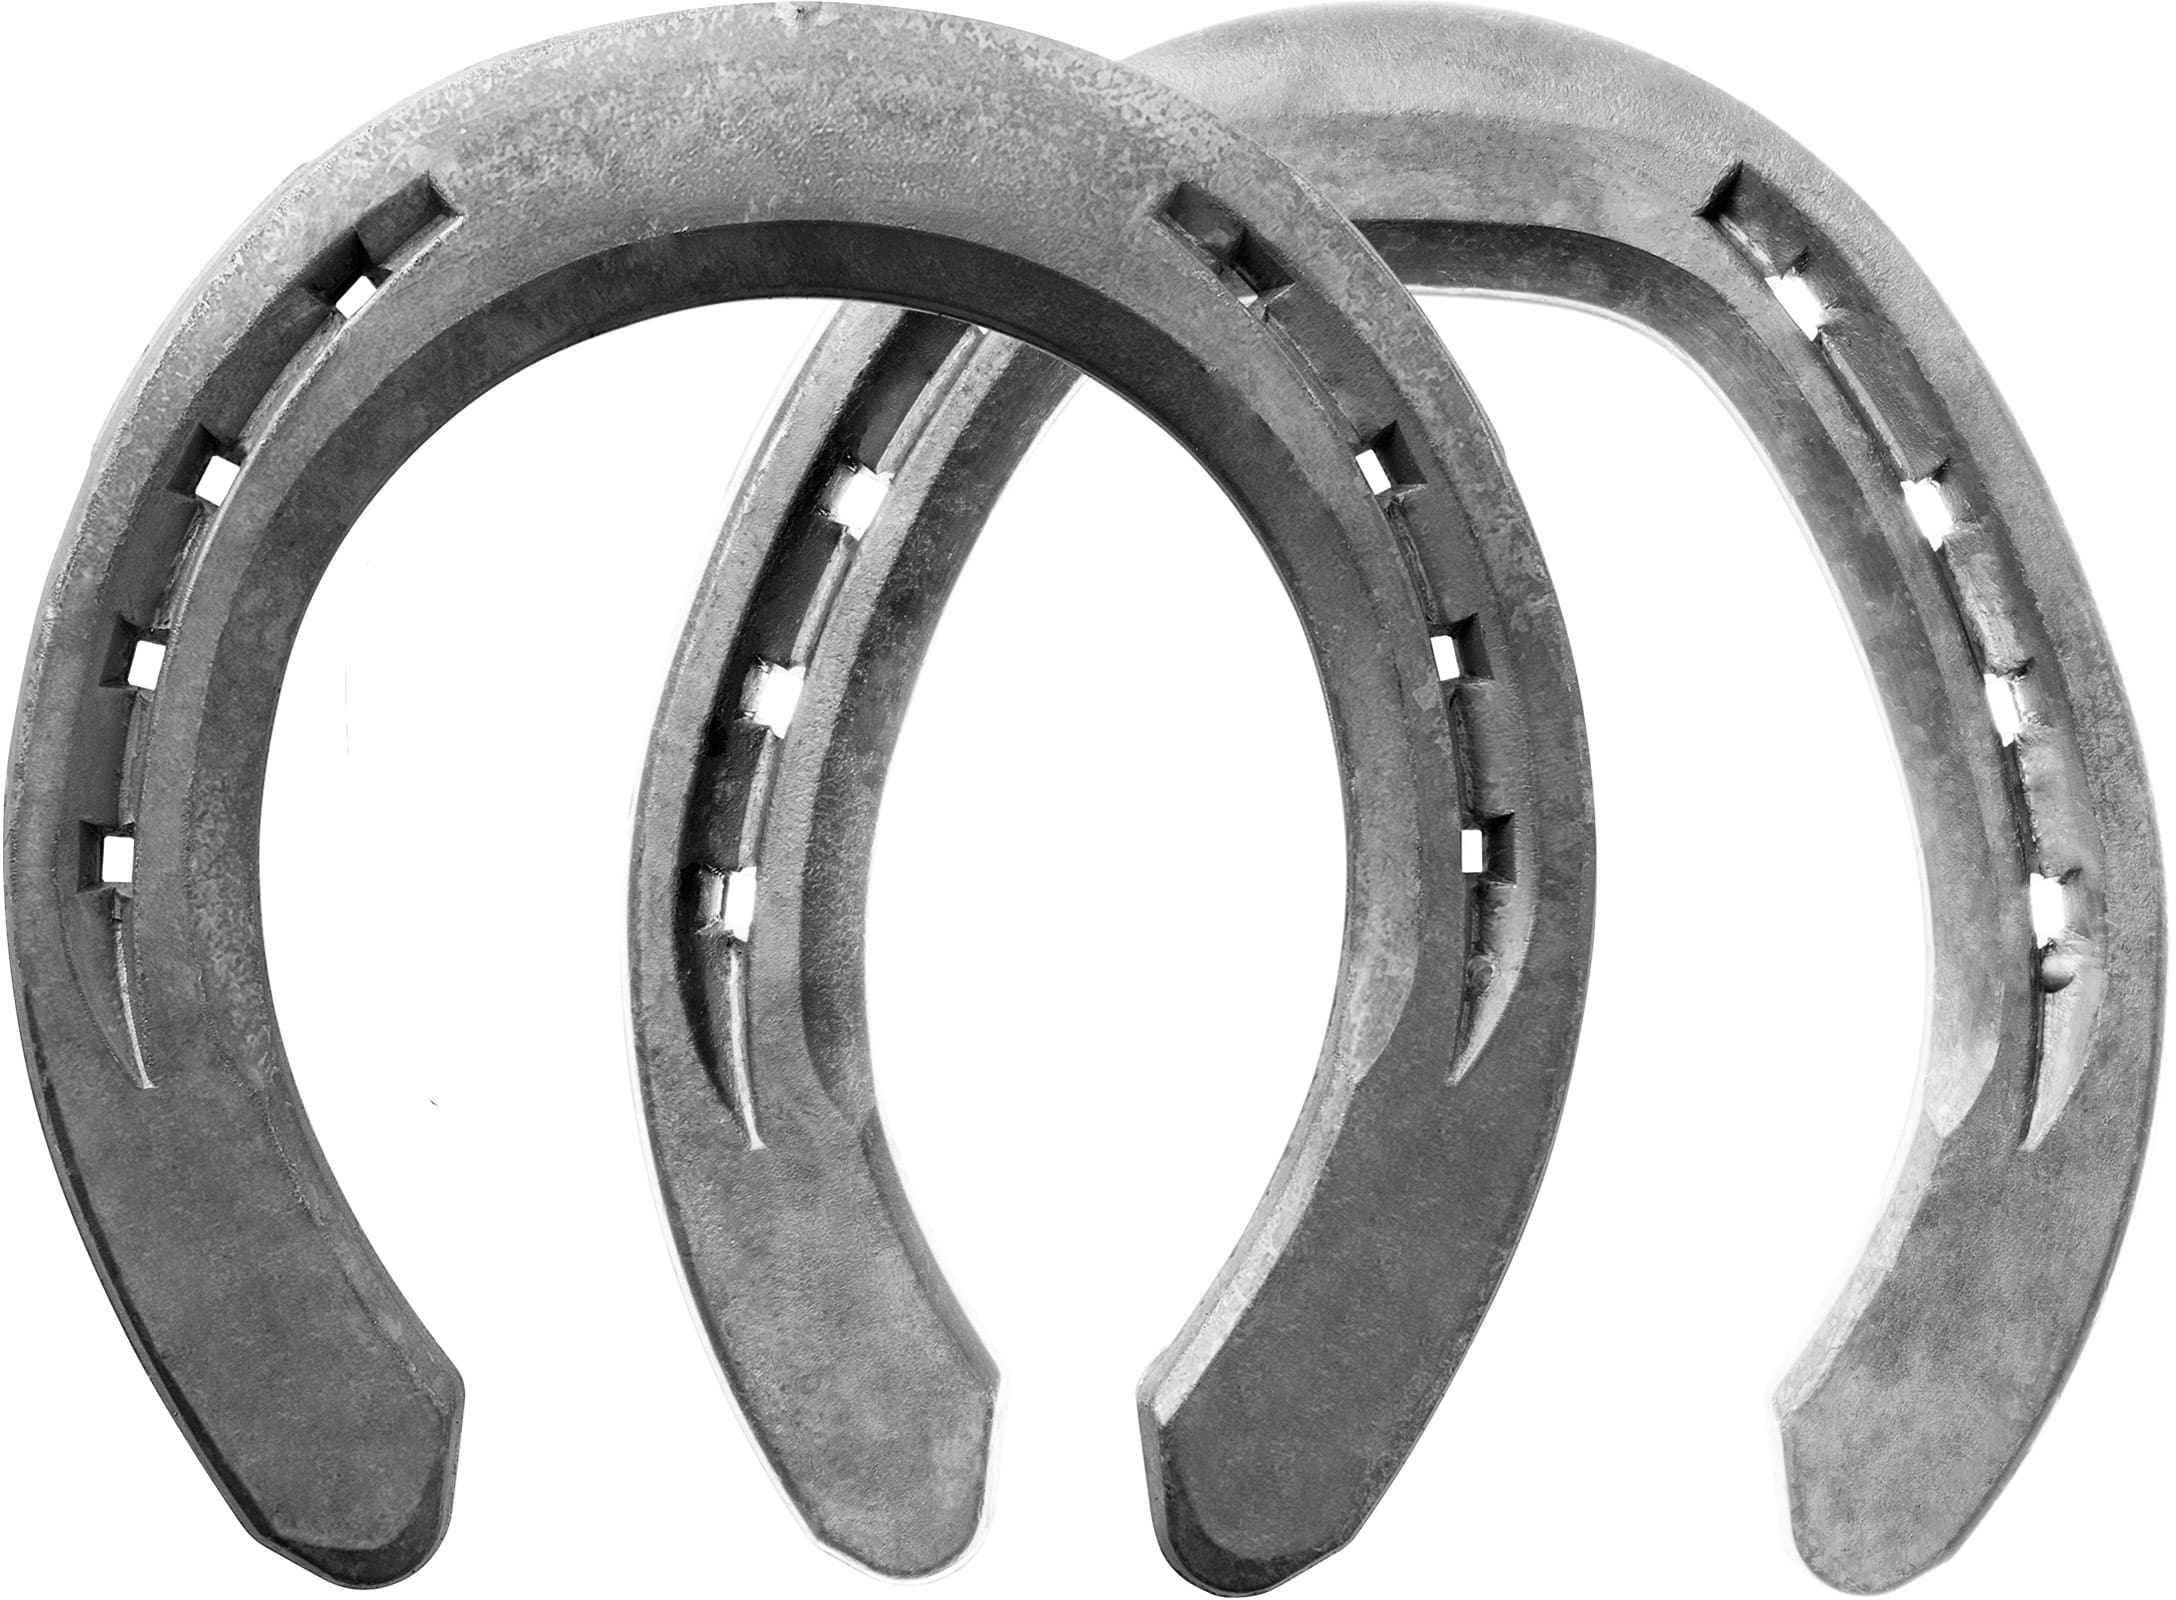 Mustad Equi-Librium Air horseshoes, front and hind, bottom view